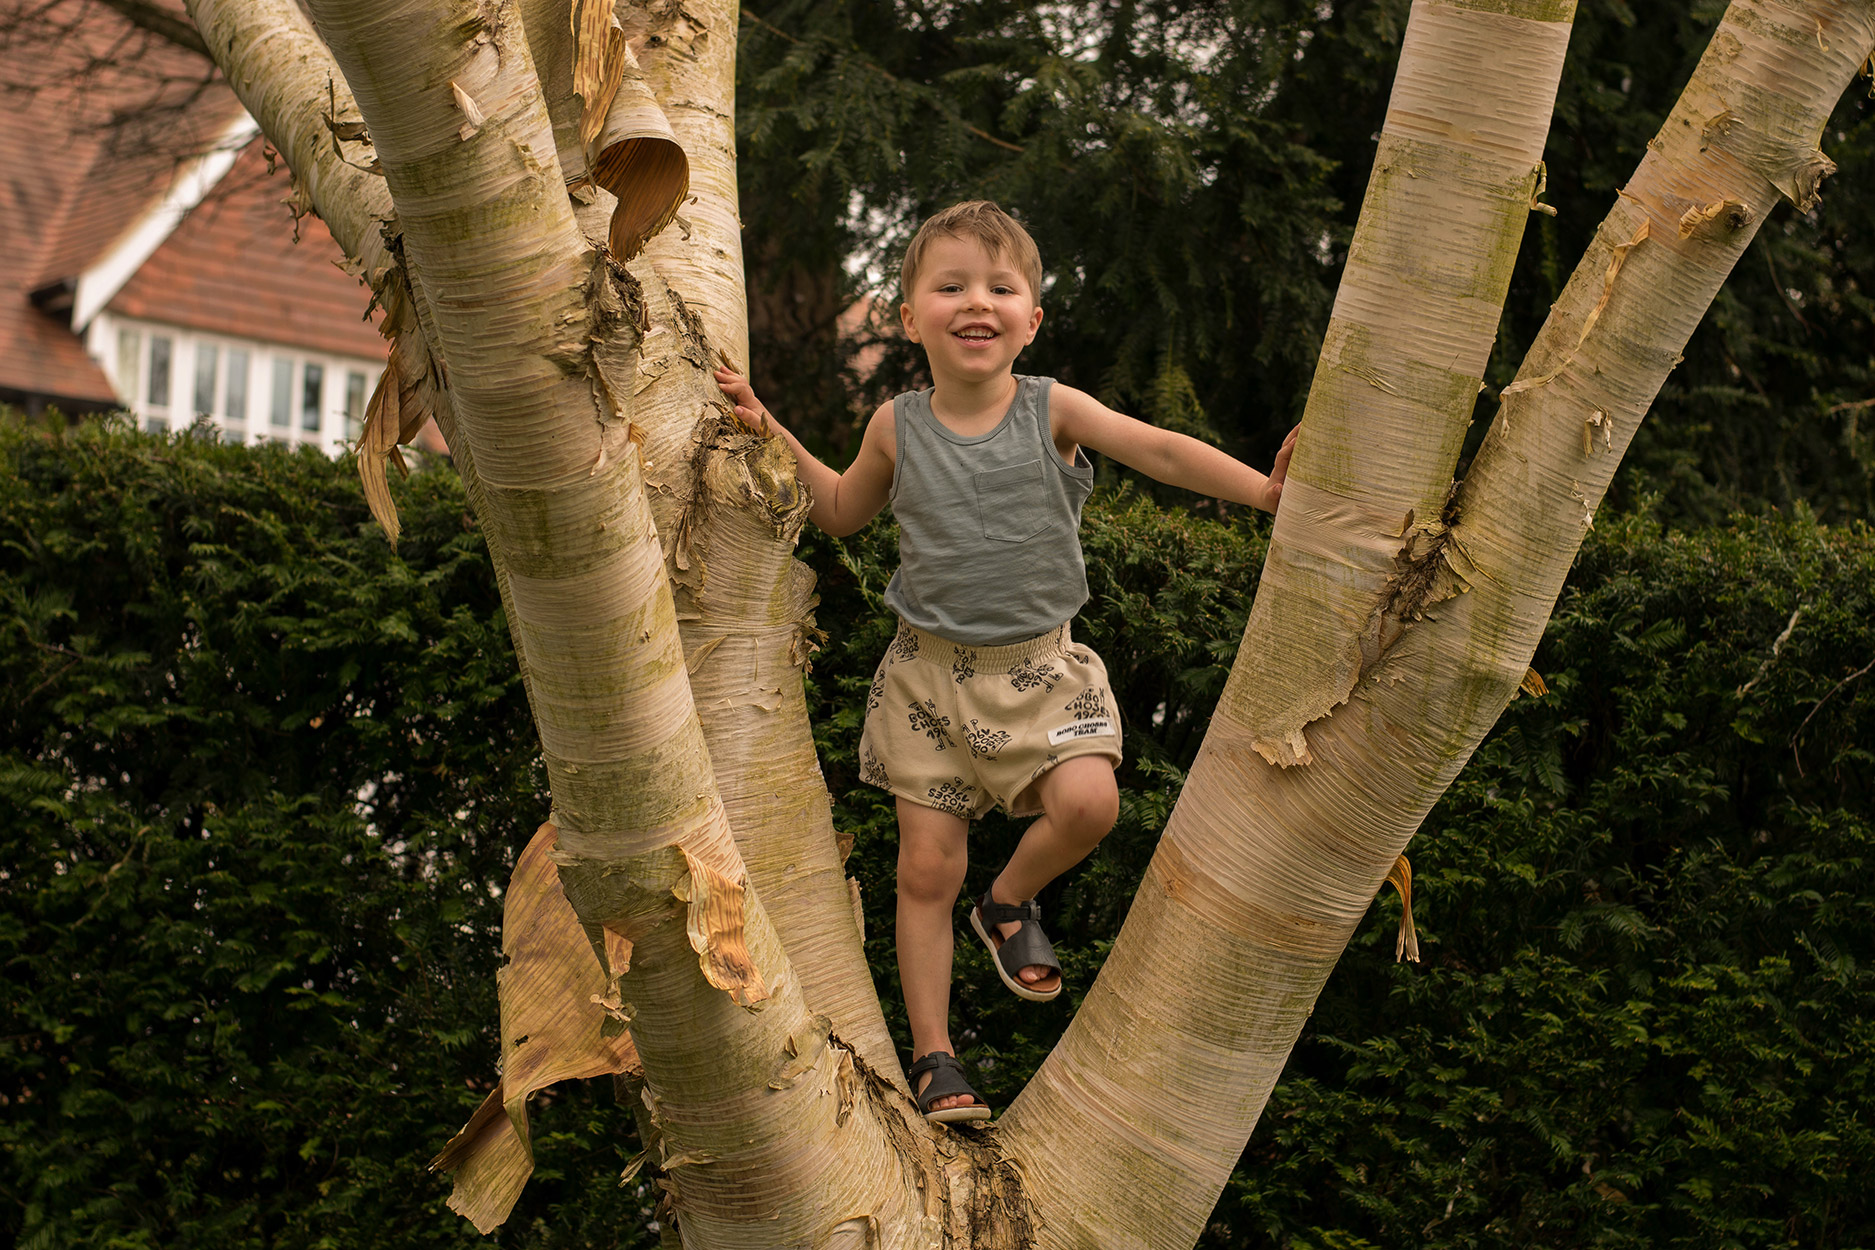 Young boy standing in tree wearing Bobo Choses 1968 shorts on Summers Day